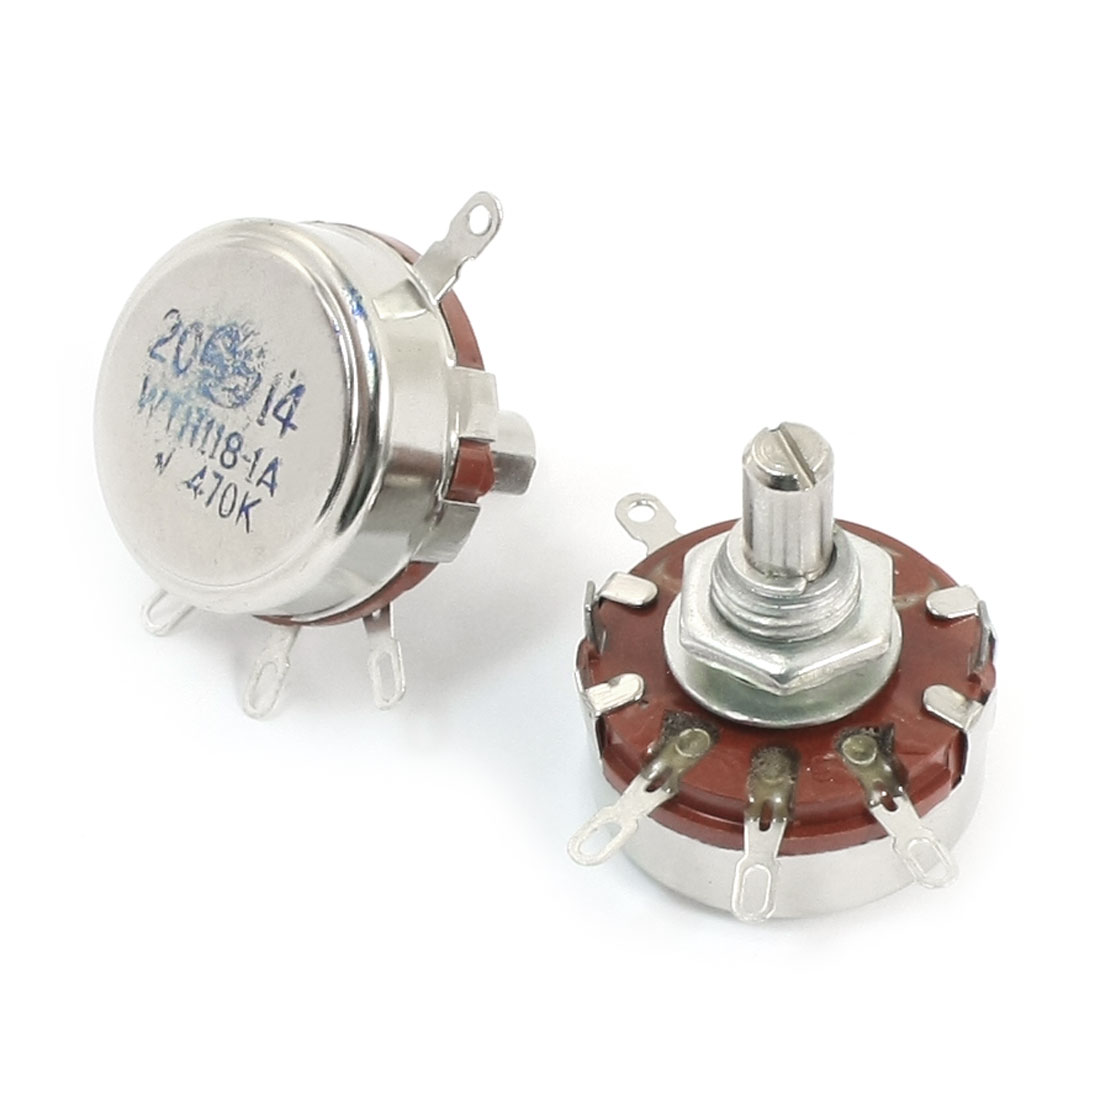 2pcs WTH118-1A 470K Ohm 20% 2W Rotary Carbon Film Potentiometer